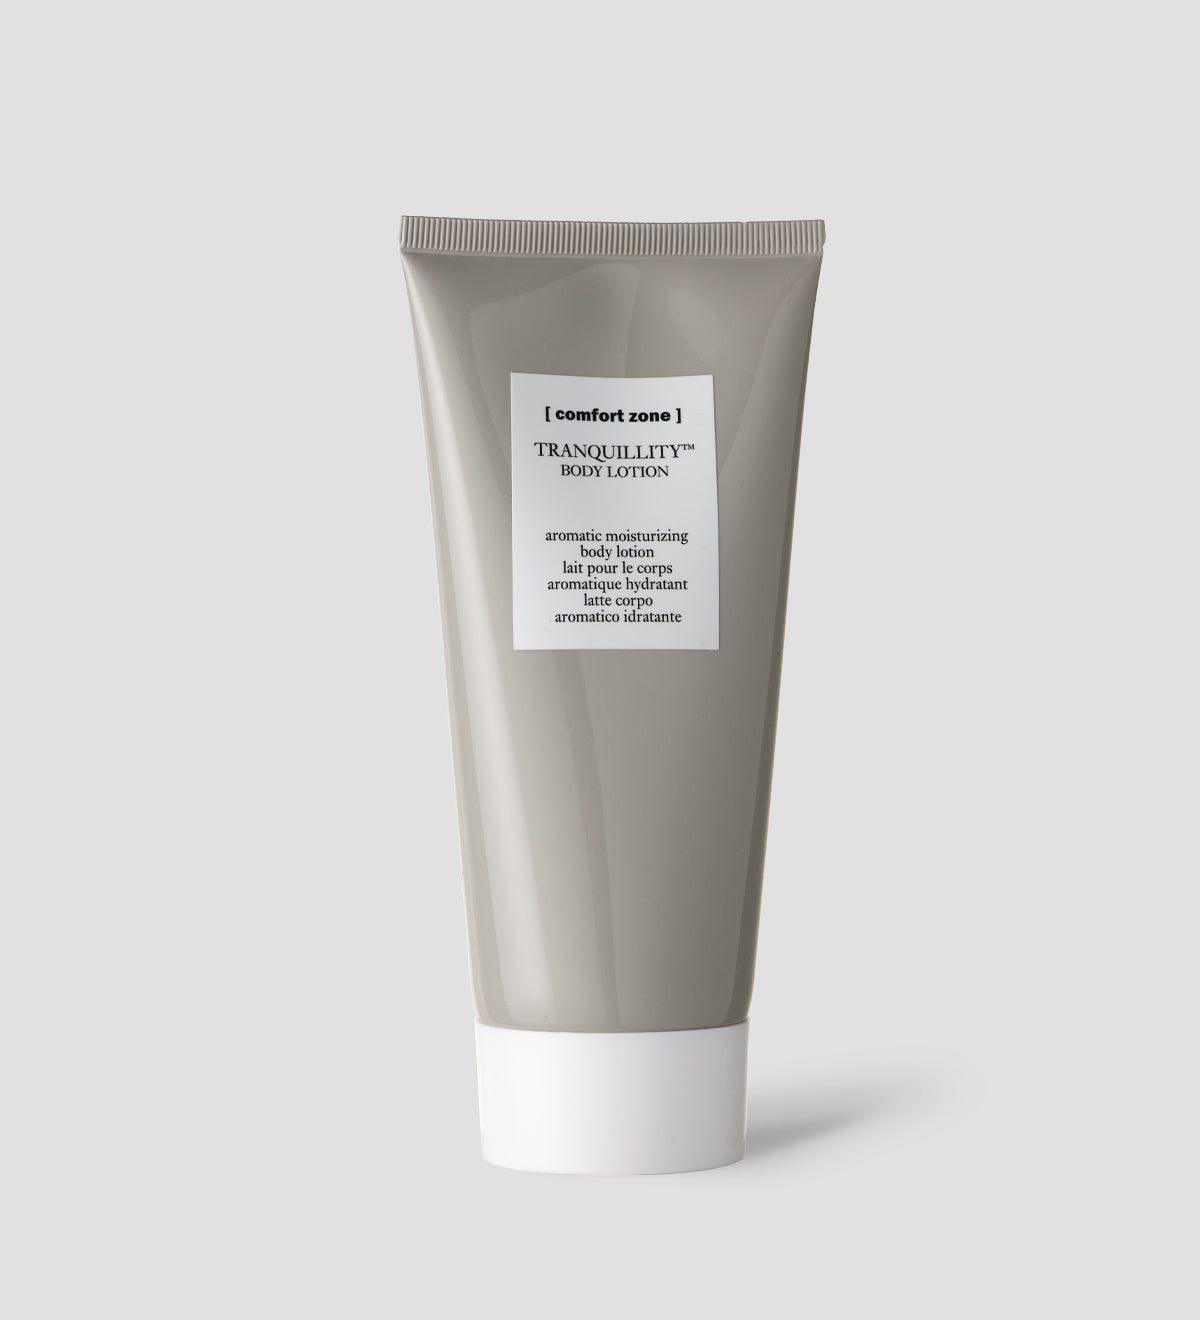 Comfort Zone: TRANQUILLITY™ BODY LOTION Aromatic moisturizing body lotion-1